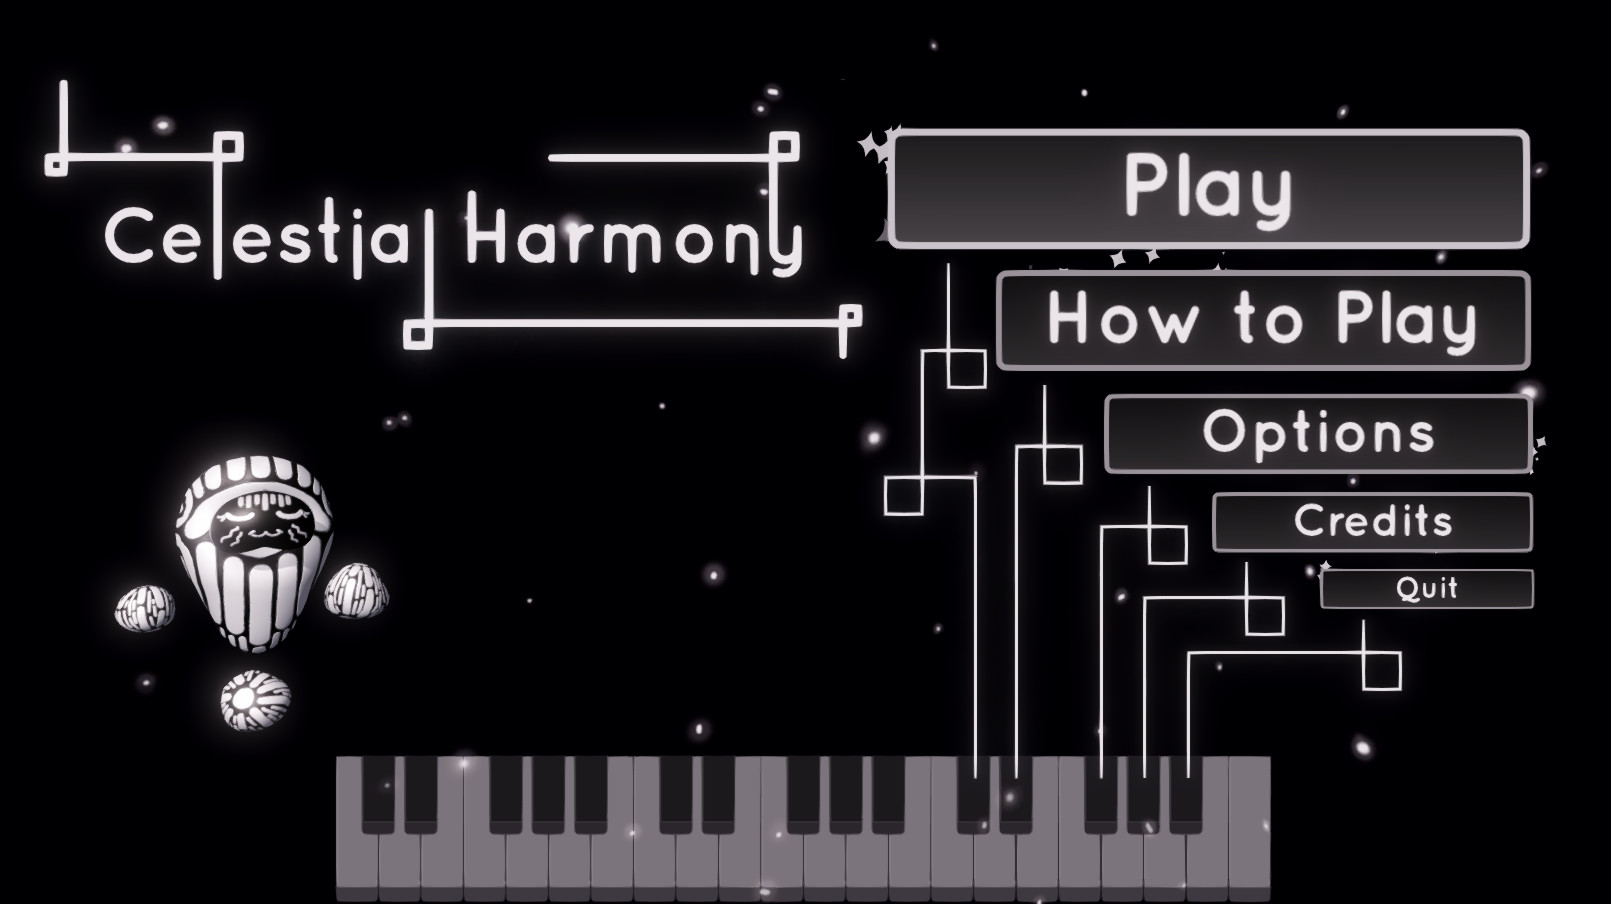 Main Menu Screen. The piano stays consistent throughout all screens. All menu options are mapped to a black key on the piano. Star particle effects go around the menu options here.